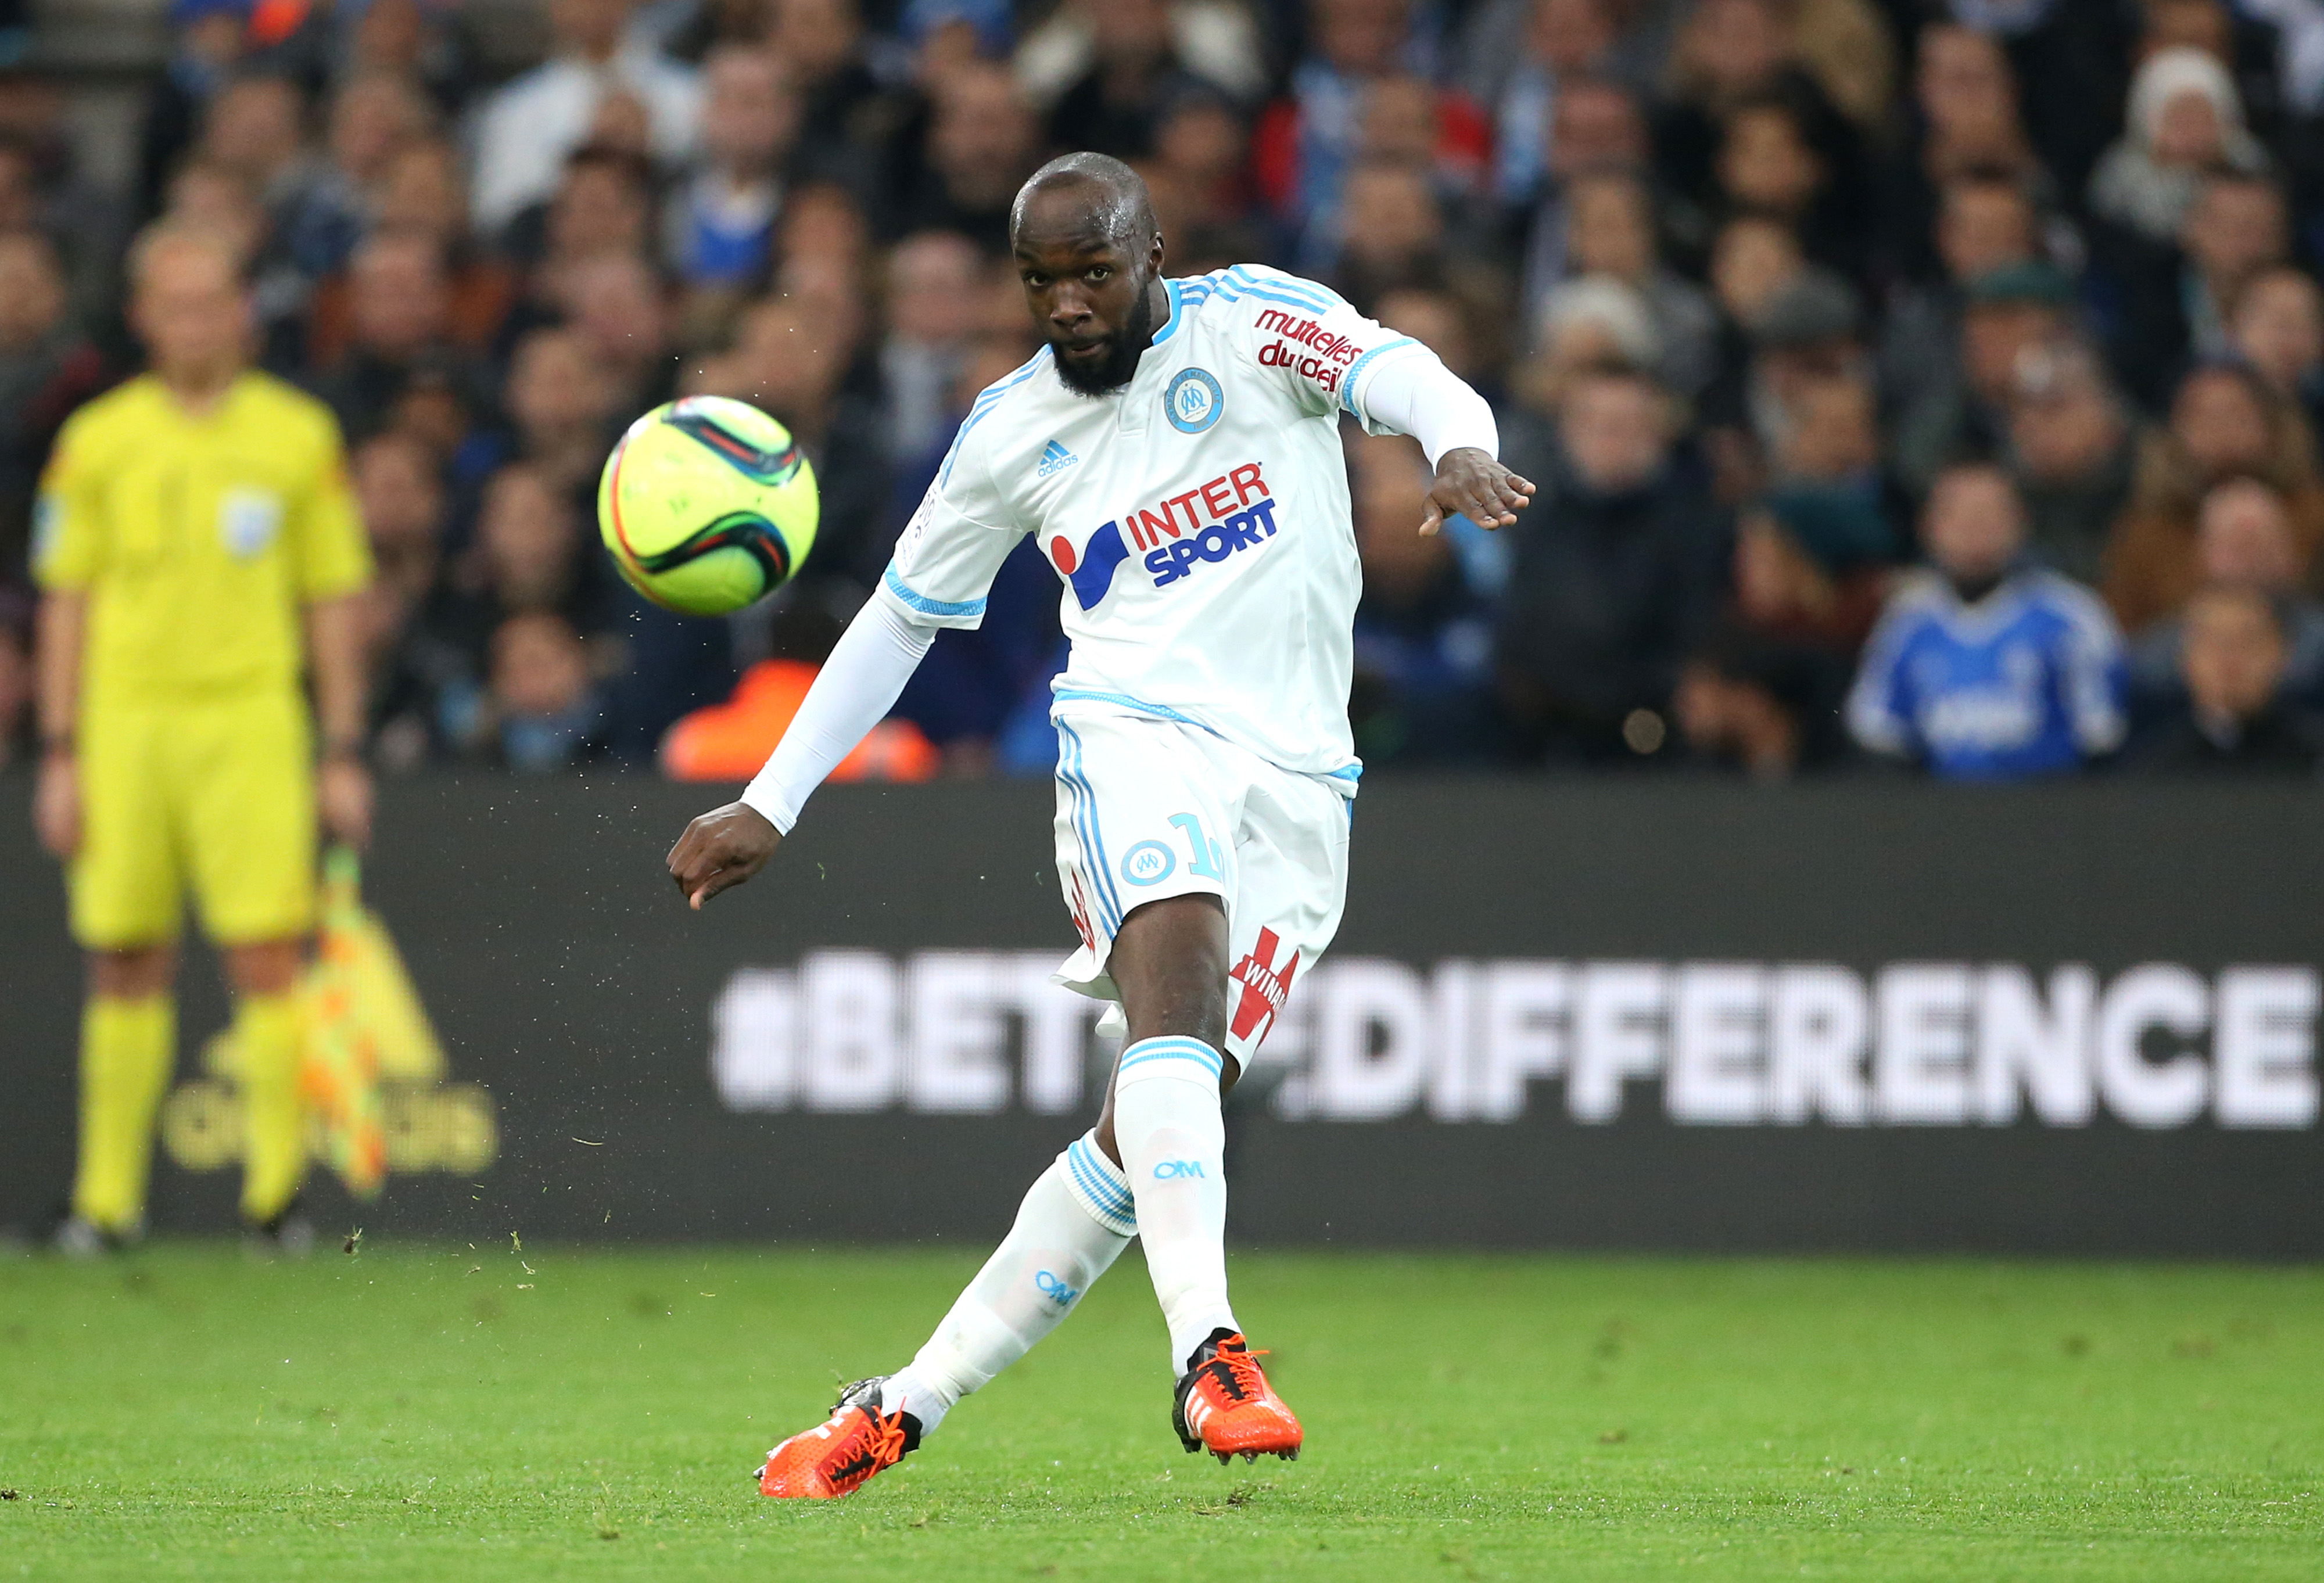 Rumour: Jose Mourinho ready to bring Lassana Diarra to Manchester United in summer transfer window